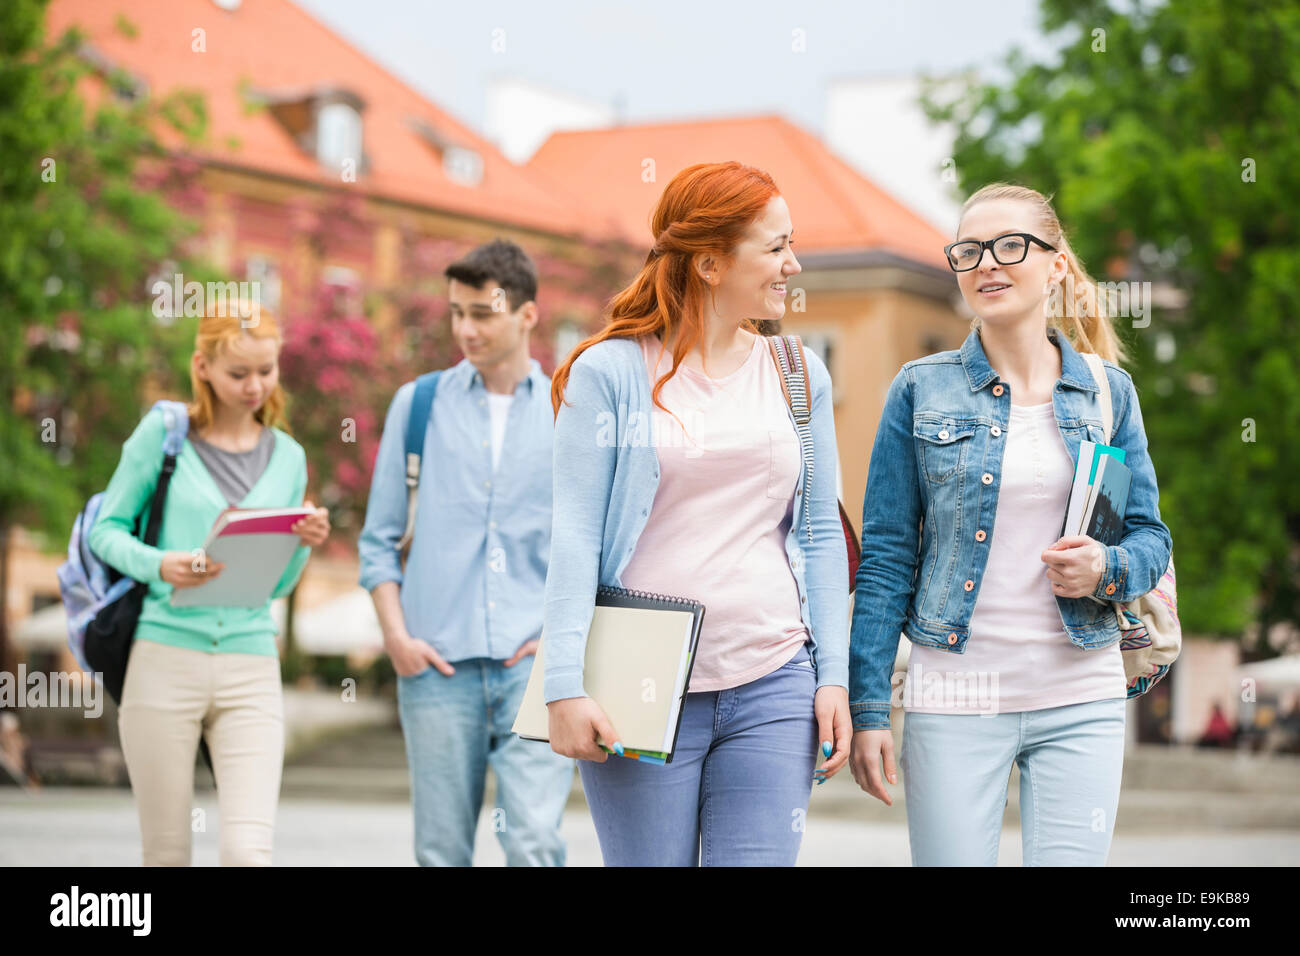 Young university friends walking on street - Stock Image